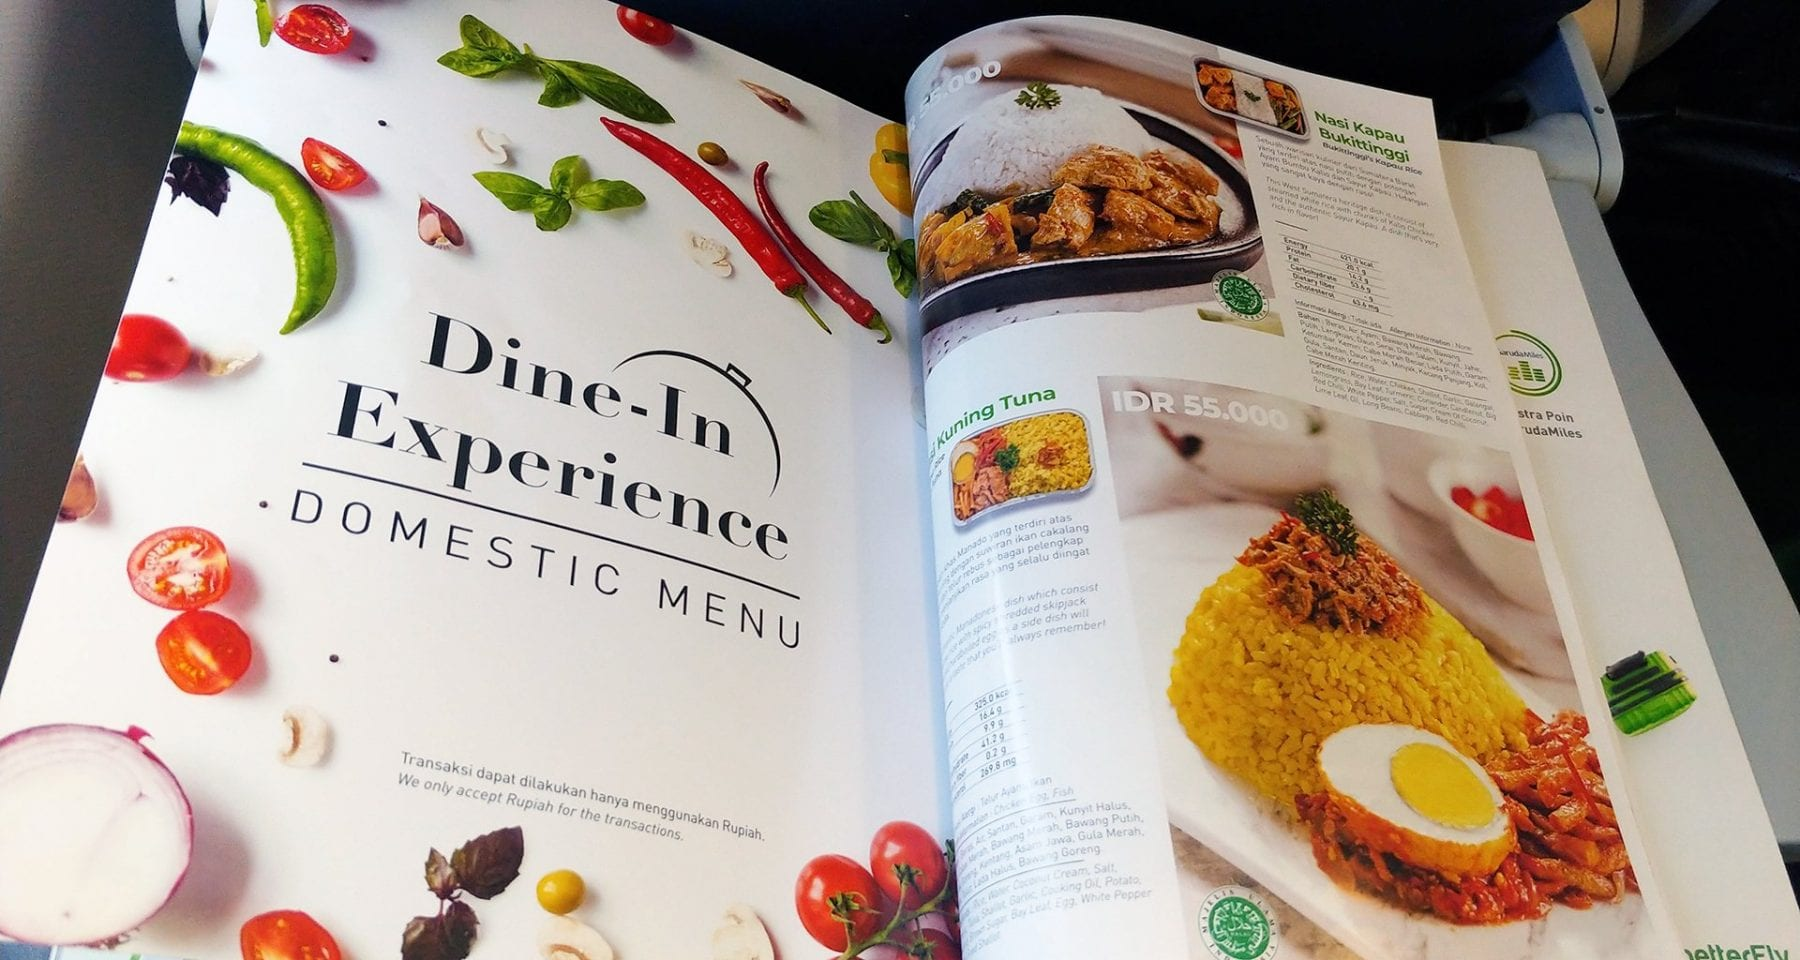 Citilink dine in experience onboard menu economy class